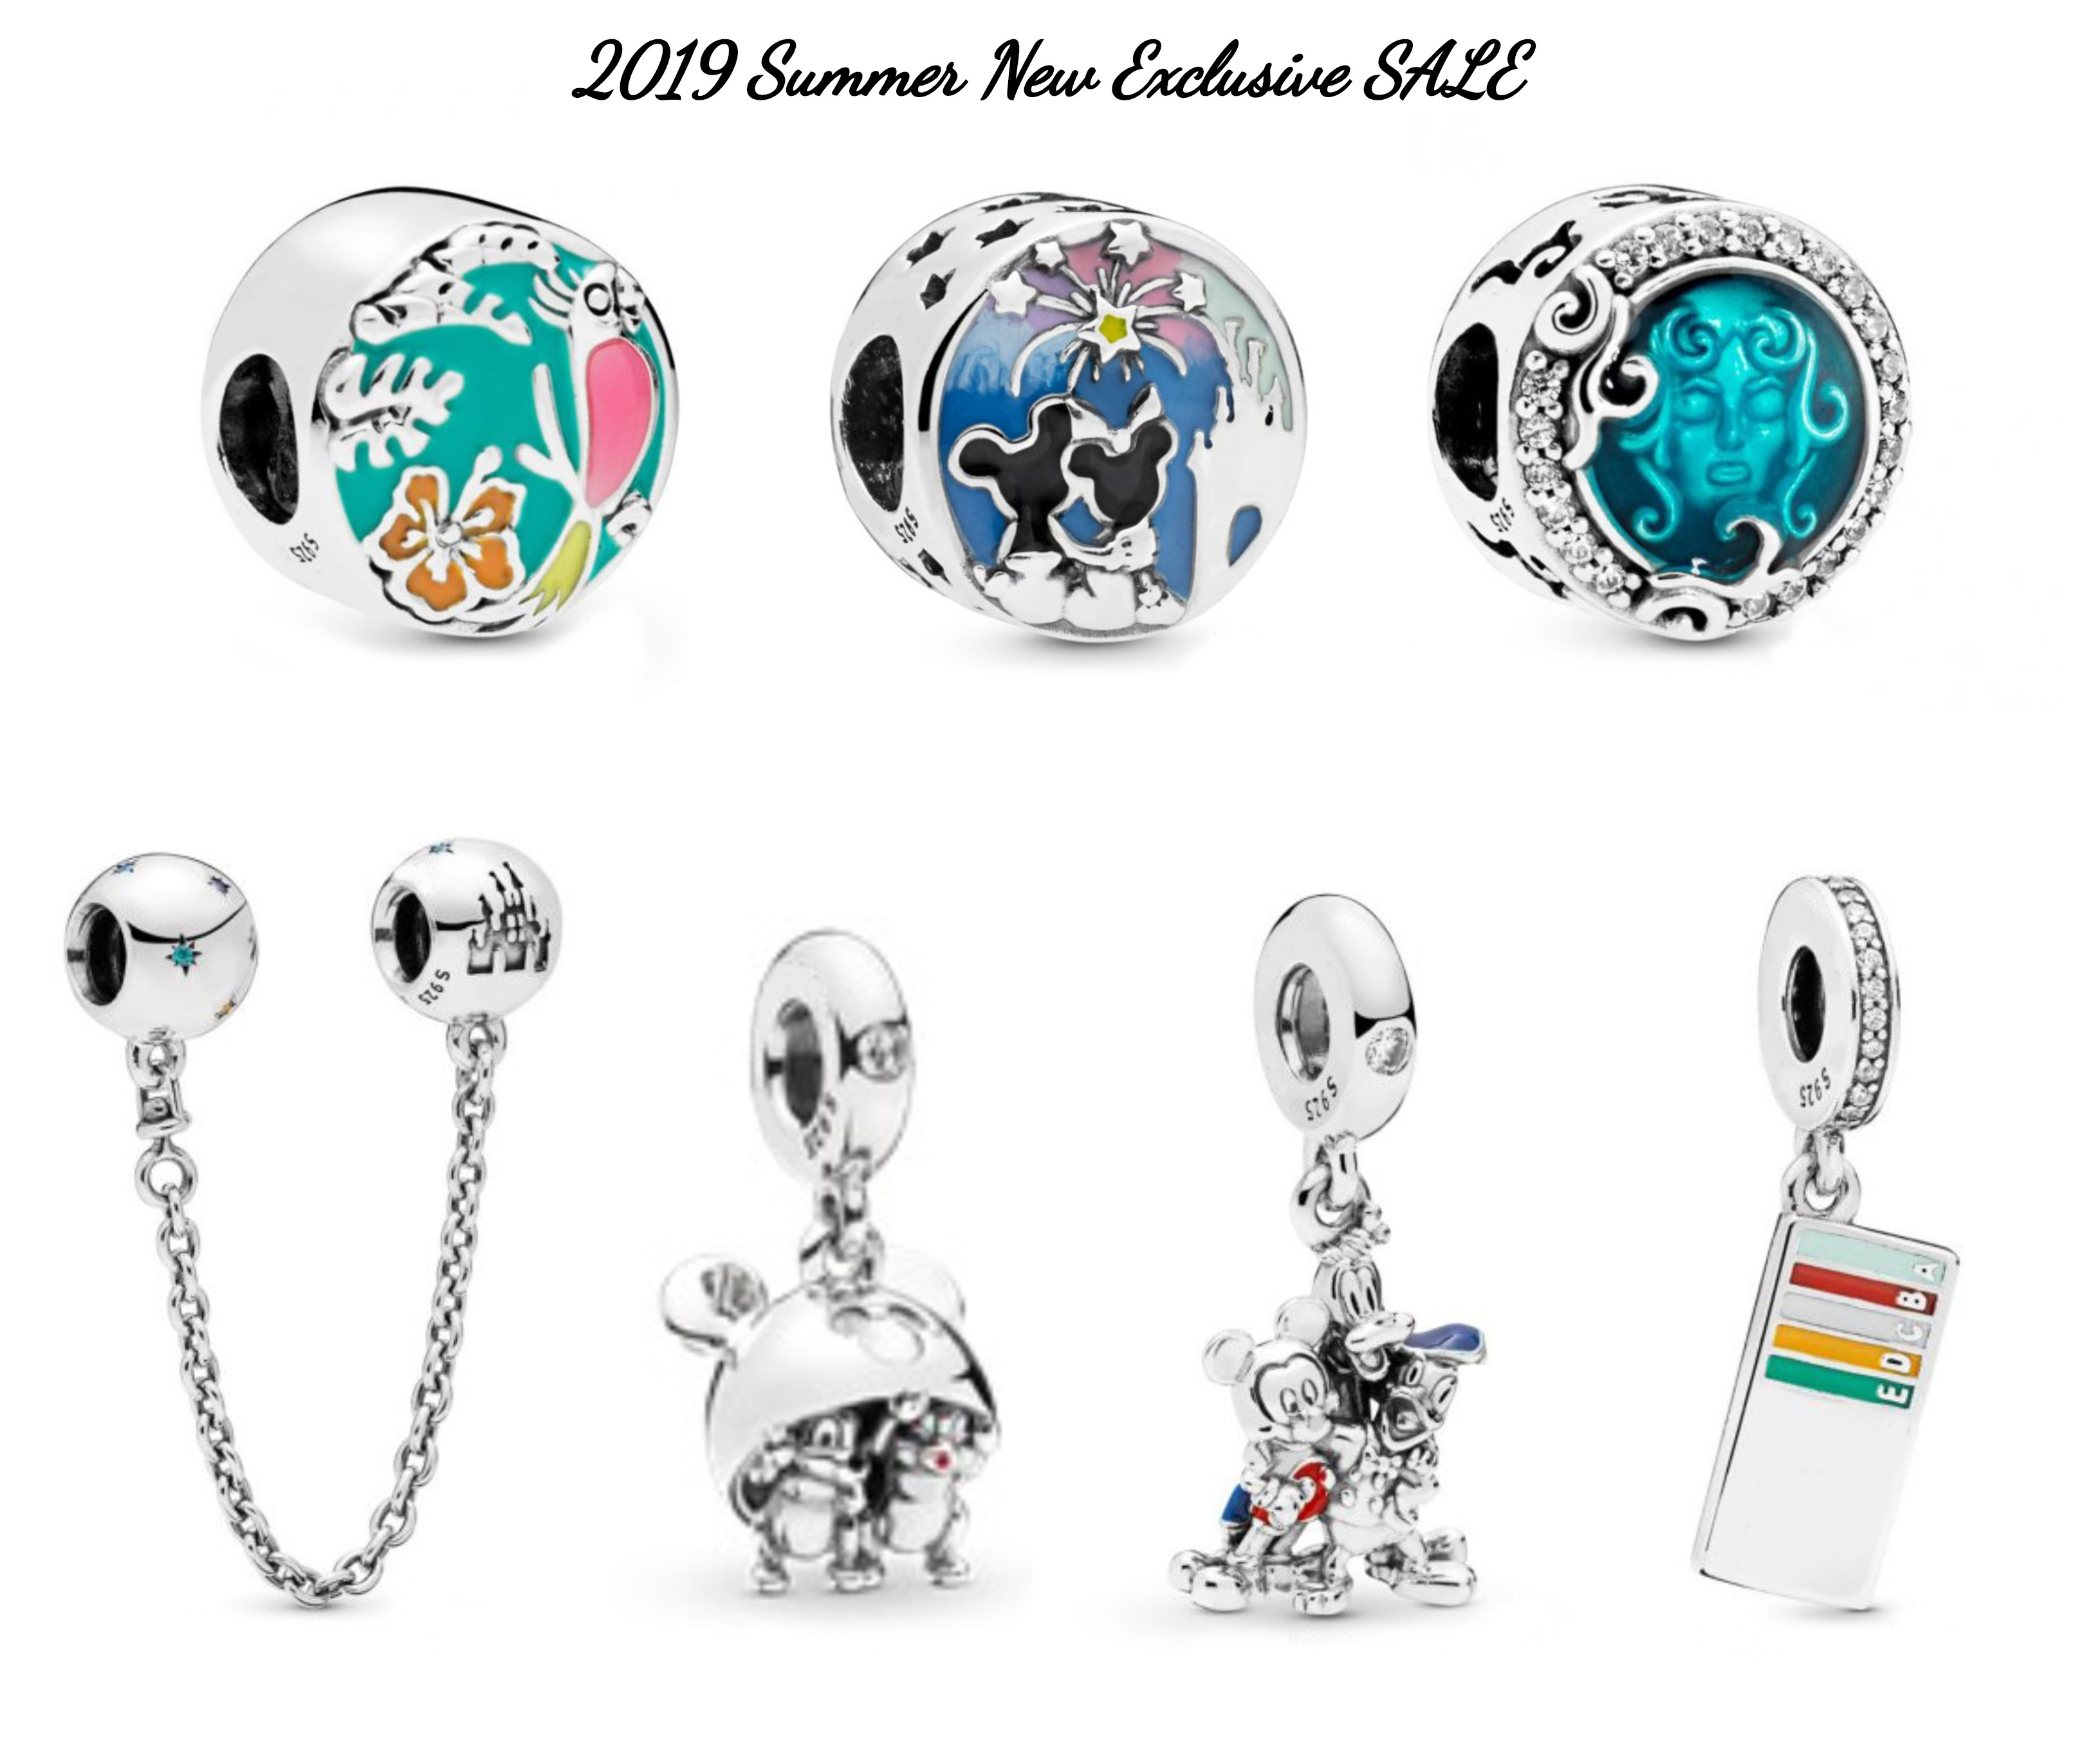 925 Sterling Silver Bead Happily Parks Mickey Friend Donald Charm Cinderella Castle Fit Original Pandora Bracelet Jewelry Summer